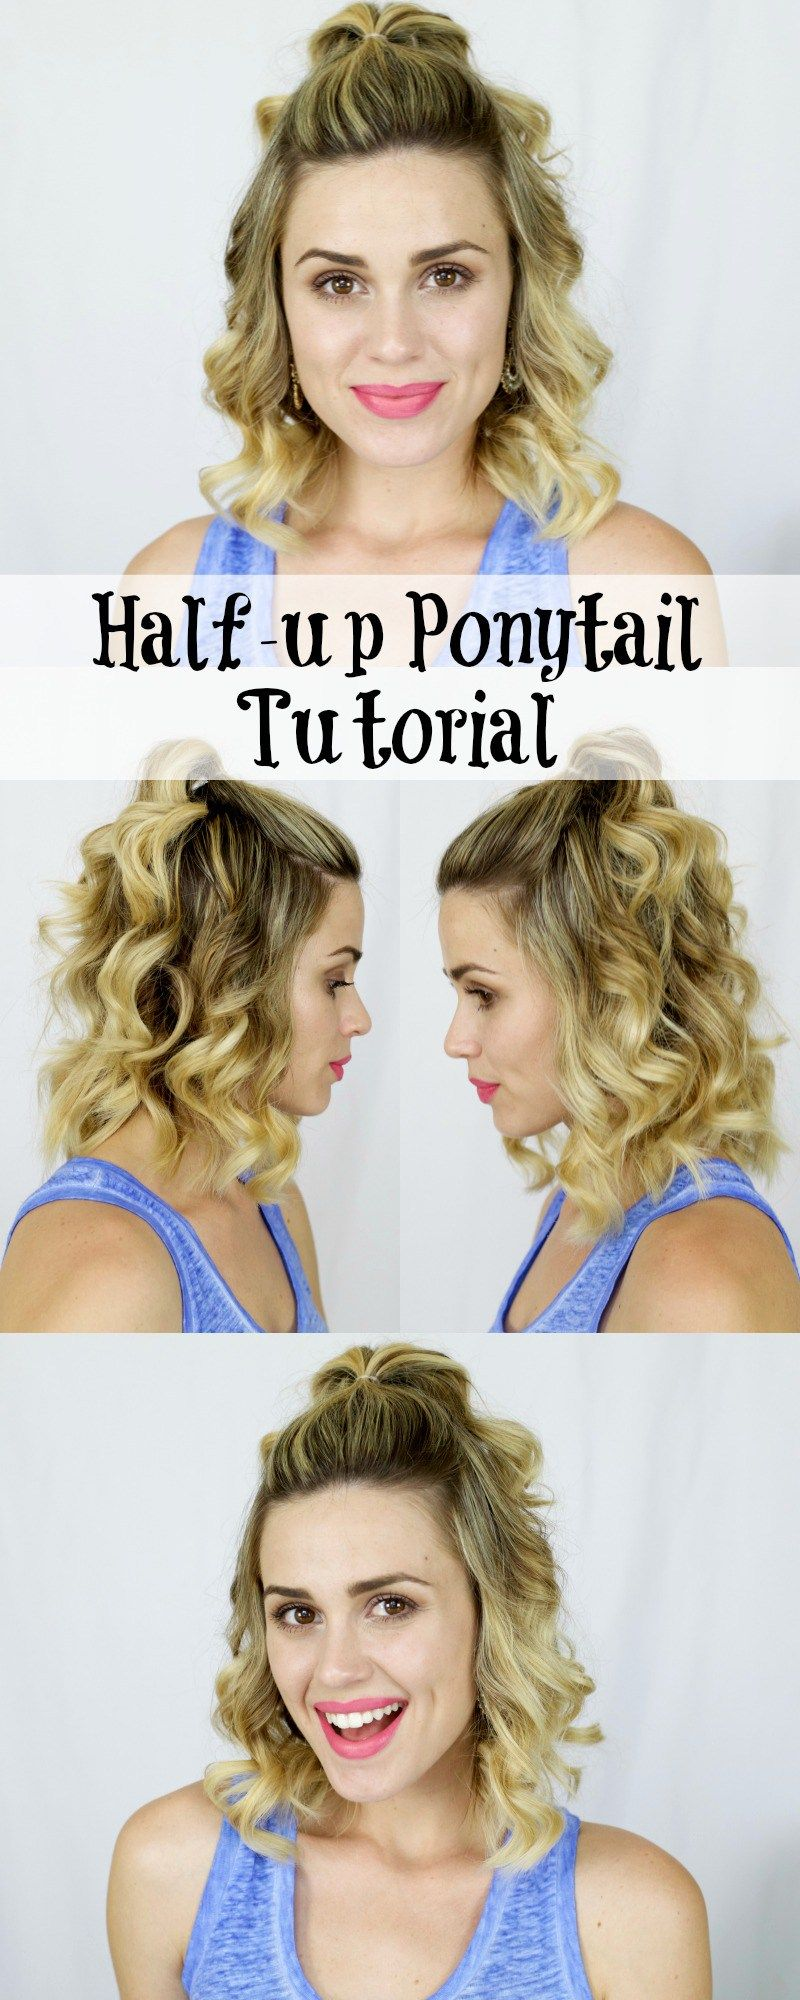 How To Half Up Ponytail With Images Short Hair Tutorial Medium Hair Styles Half Up Hair